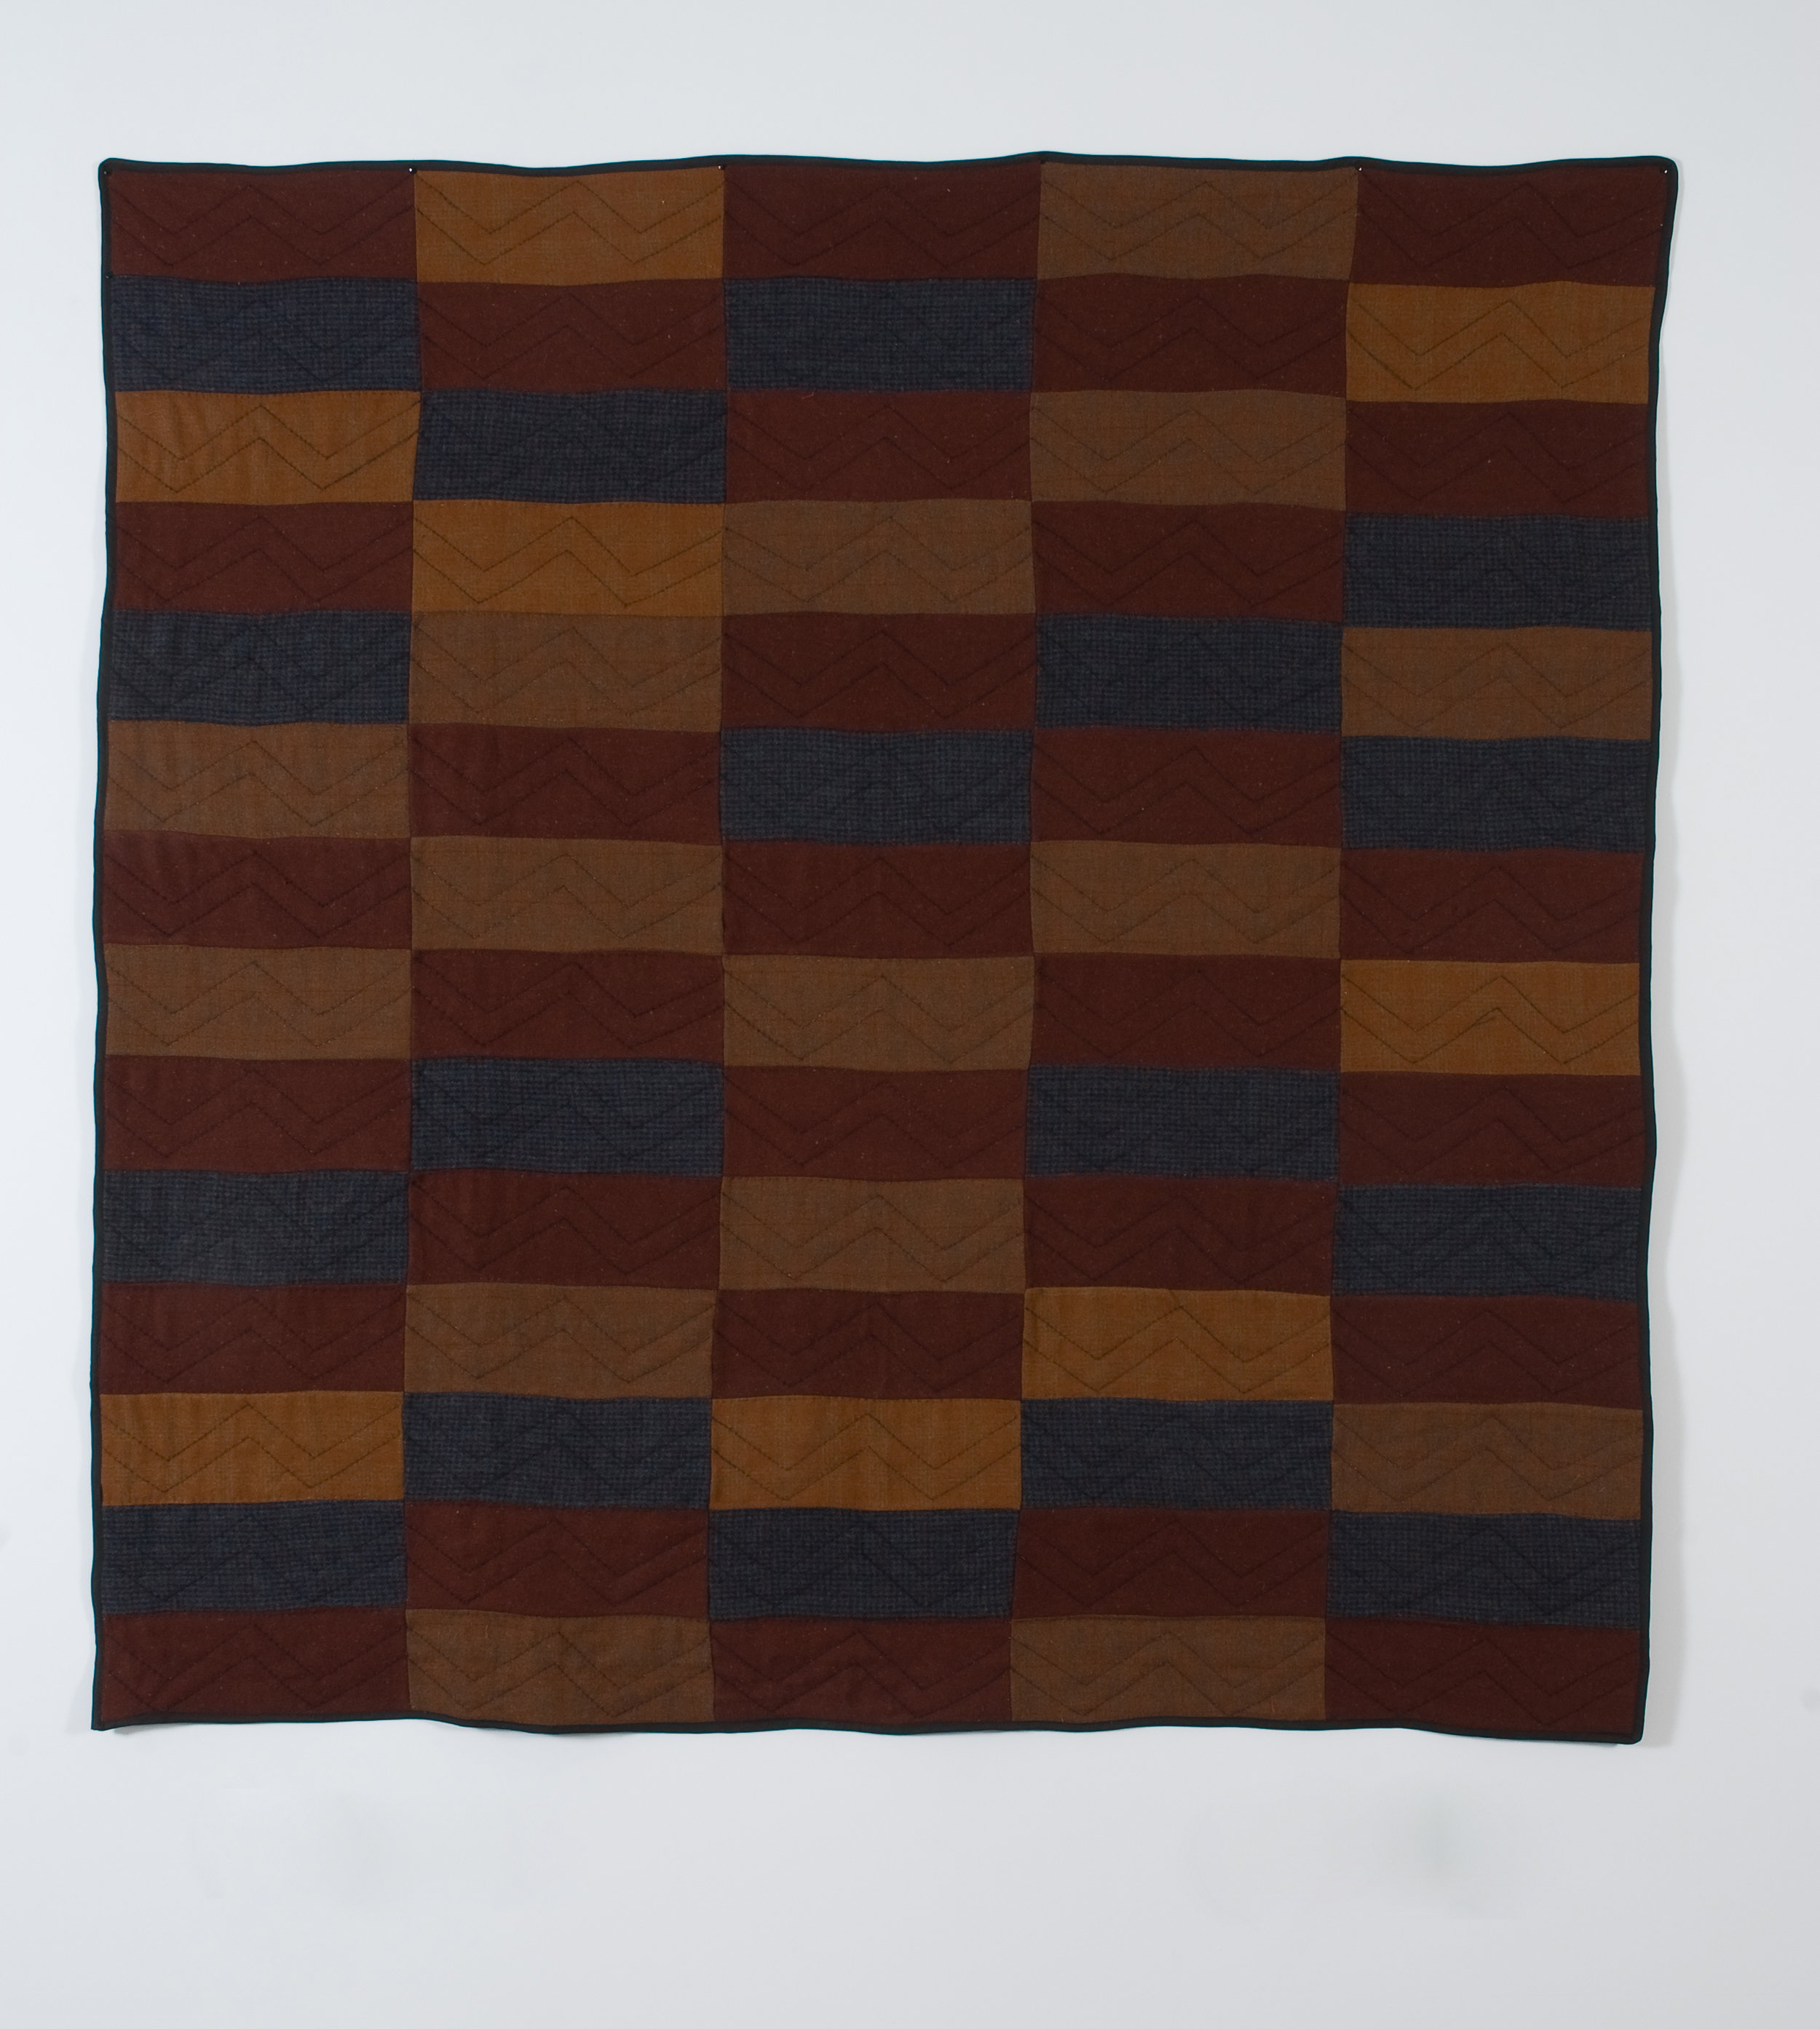 Brick, 2008 wool and cotton 192 x 189 cm - 75 1/2 x 74 3/8 inches